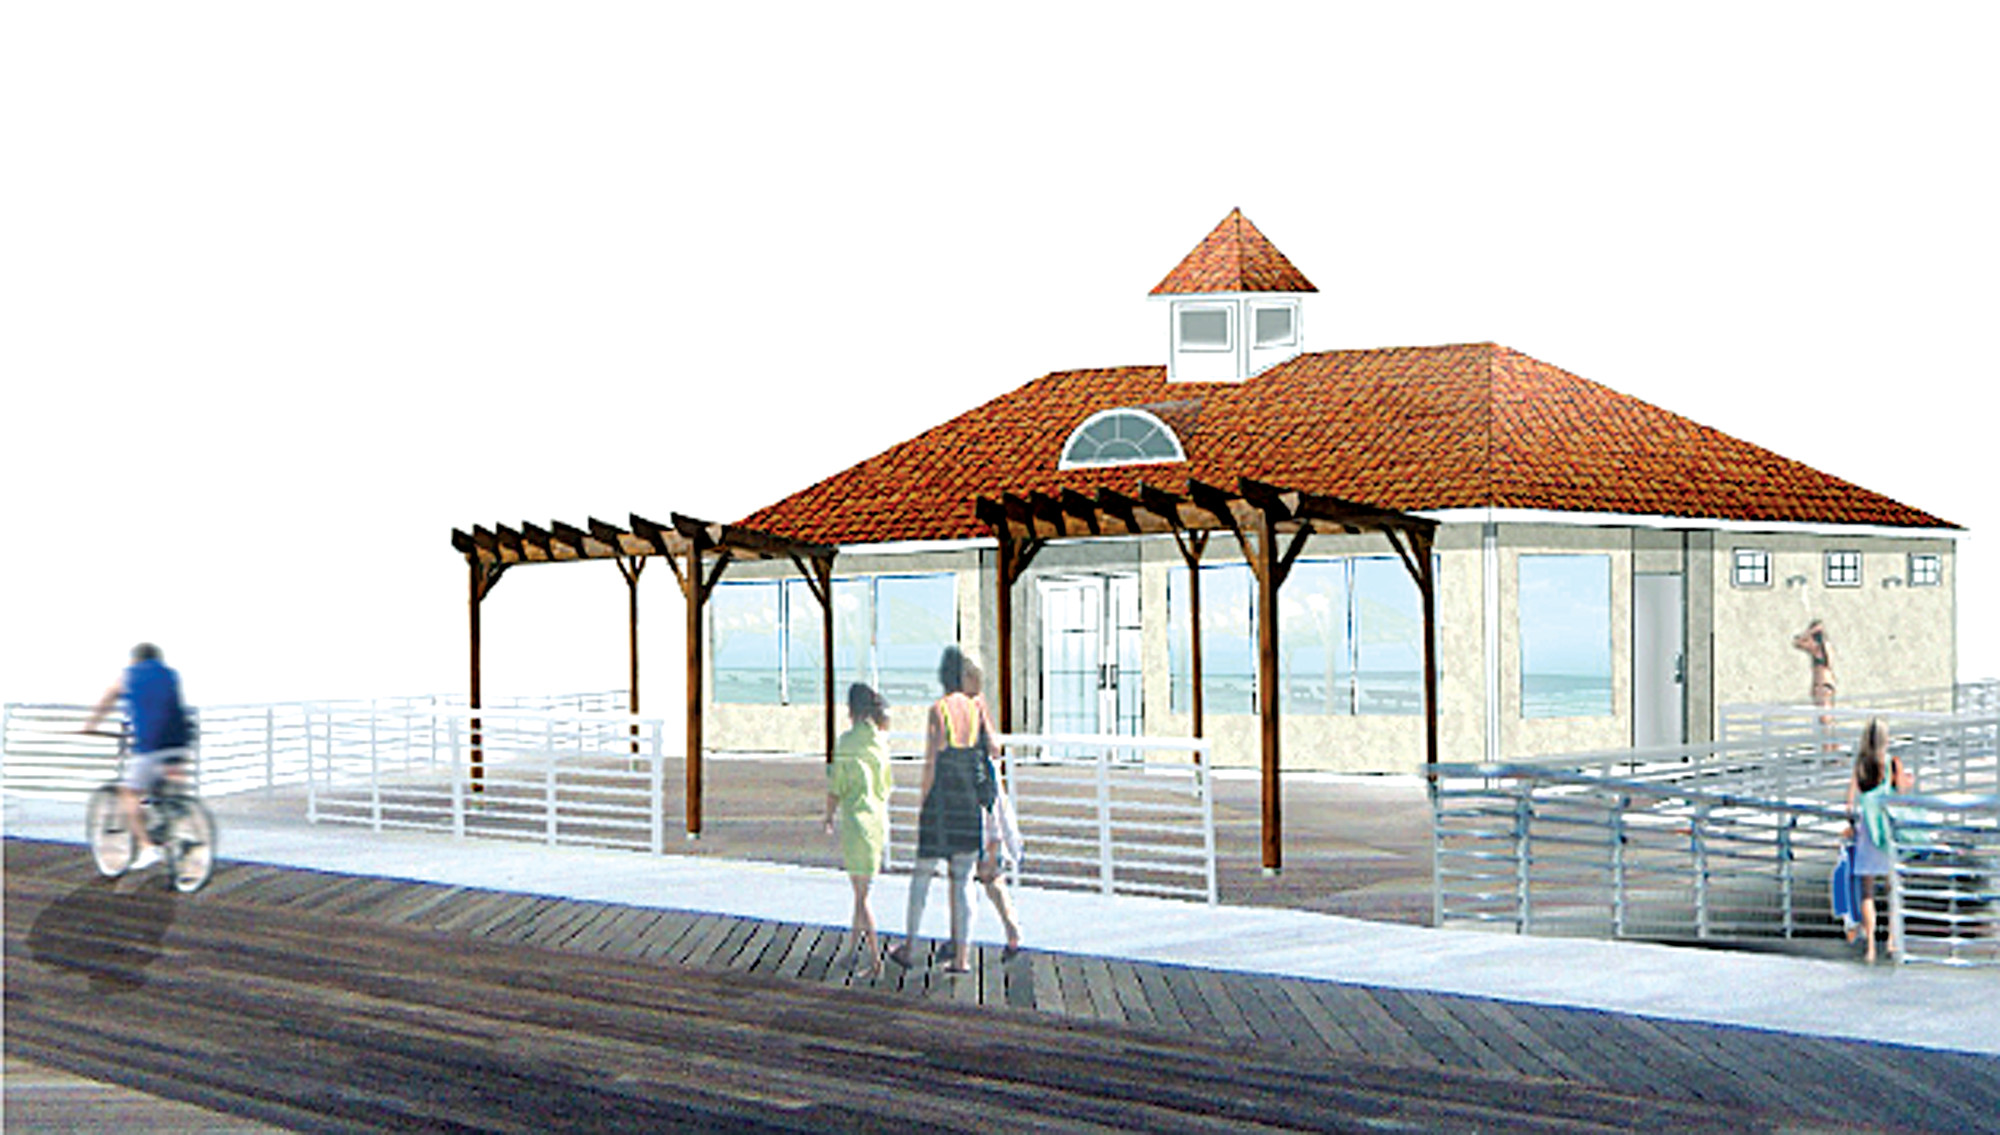 The city presented a rendering of new comfort stations and concessions that will be built along the boardwalk at Riverside, Edwards and Grand boulevards.